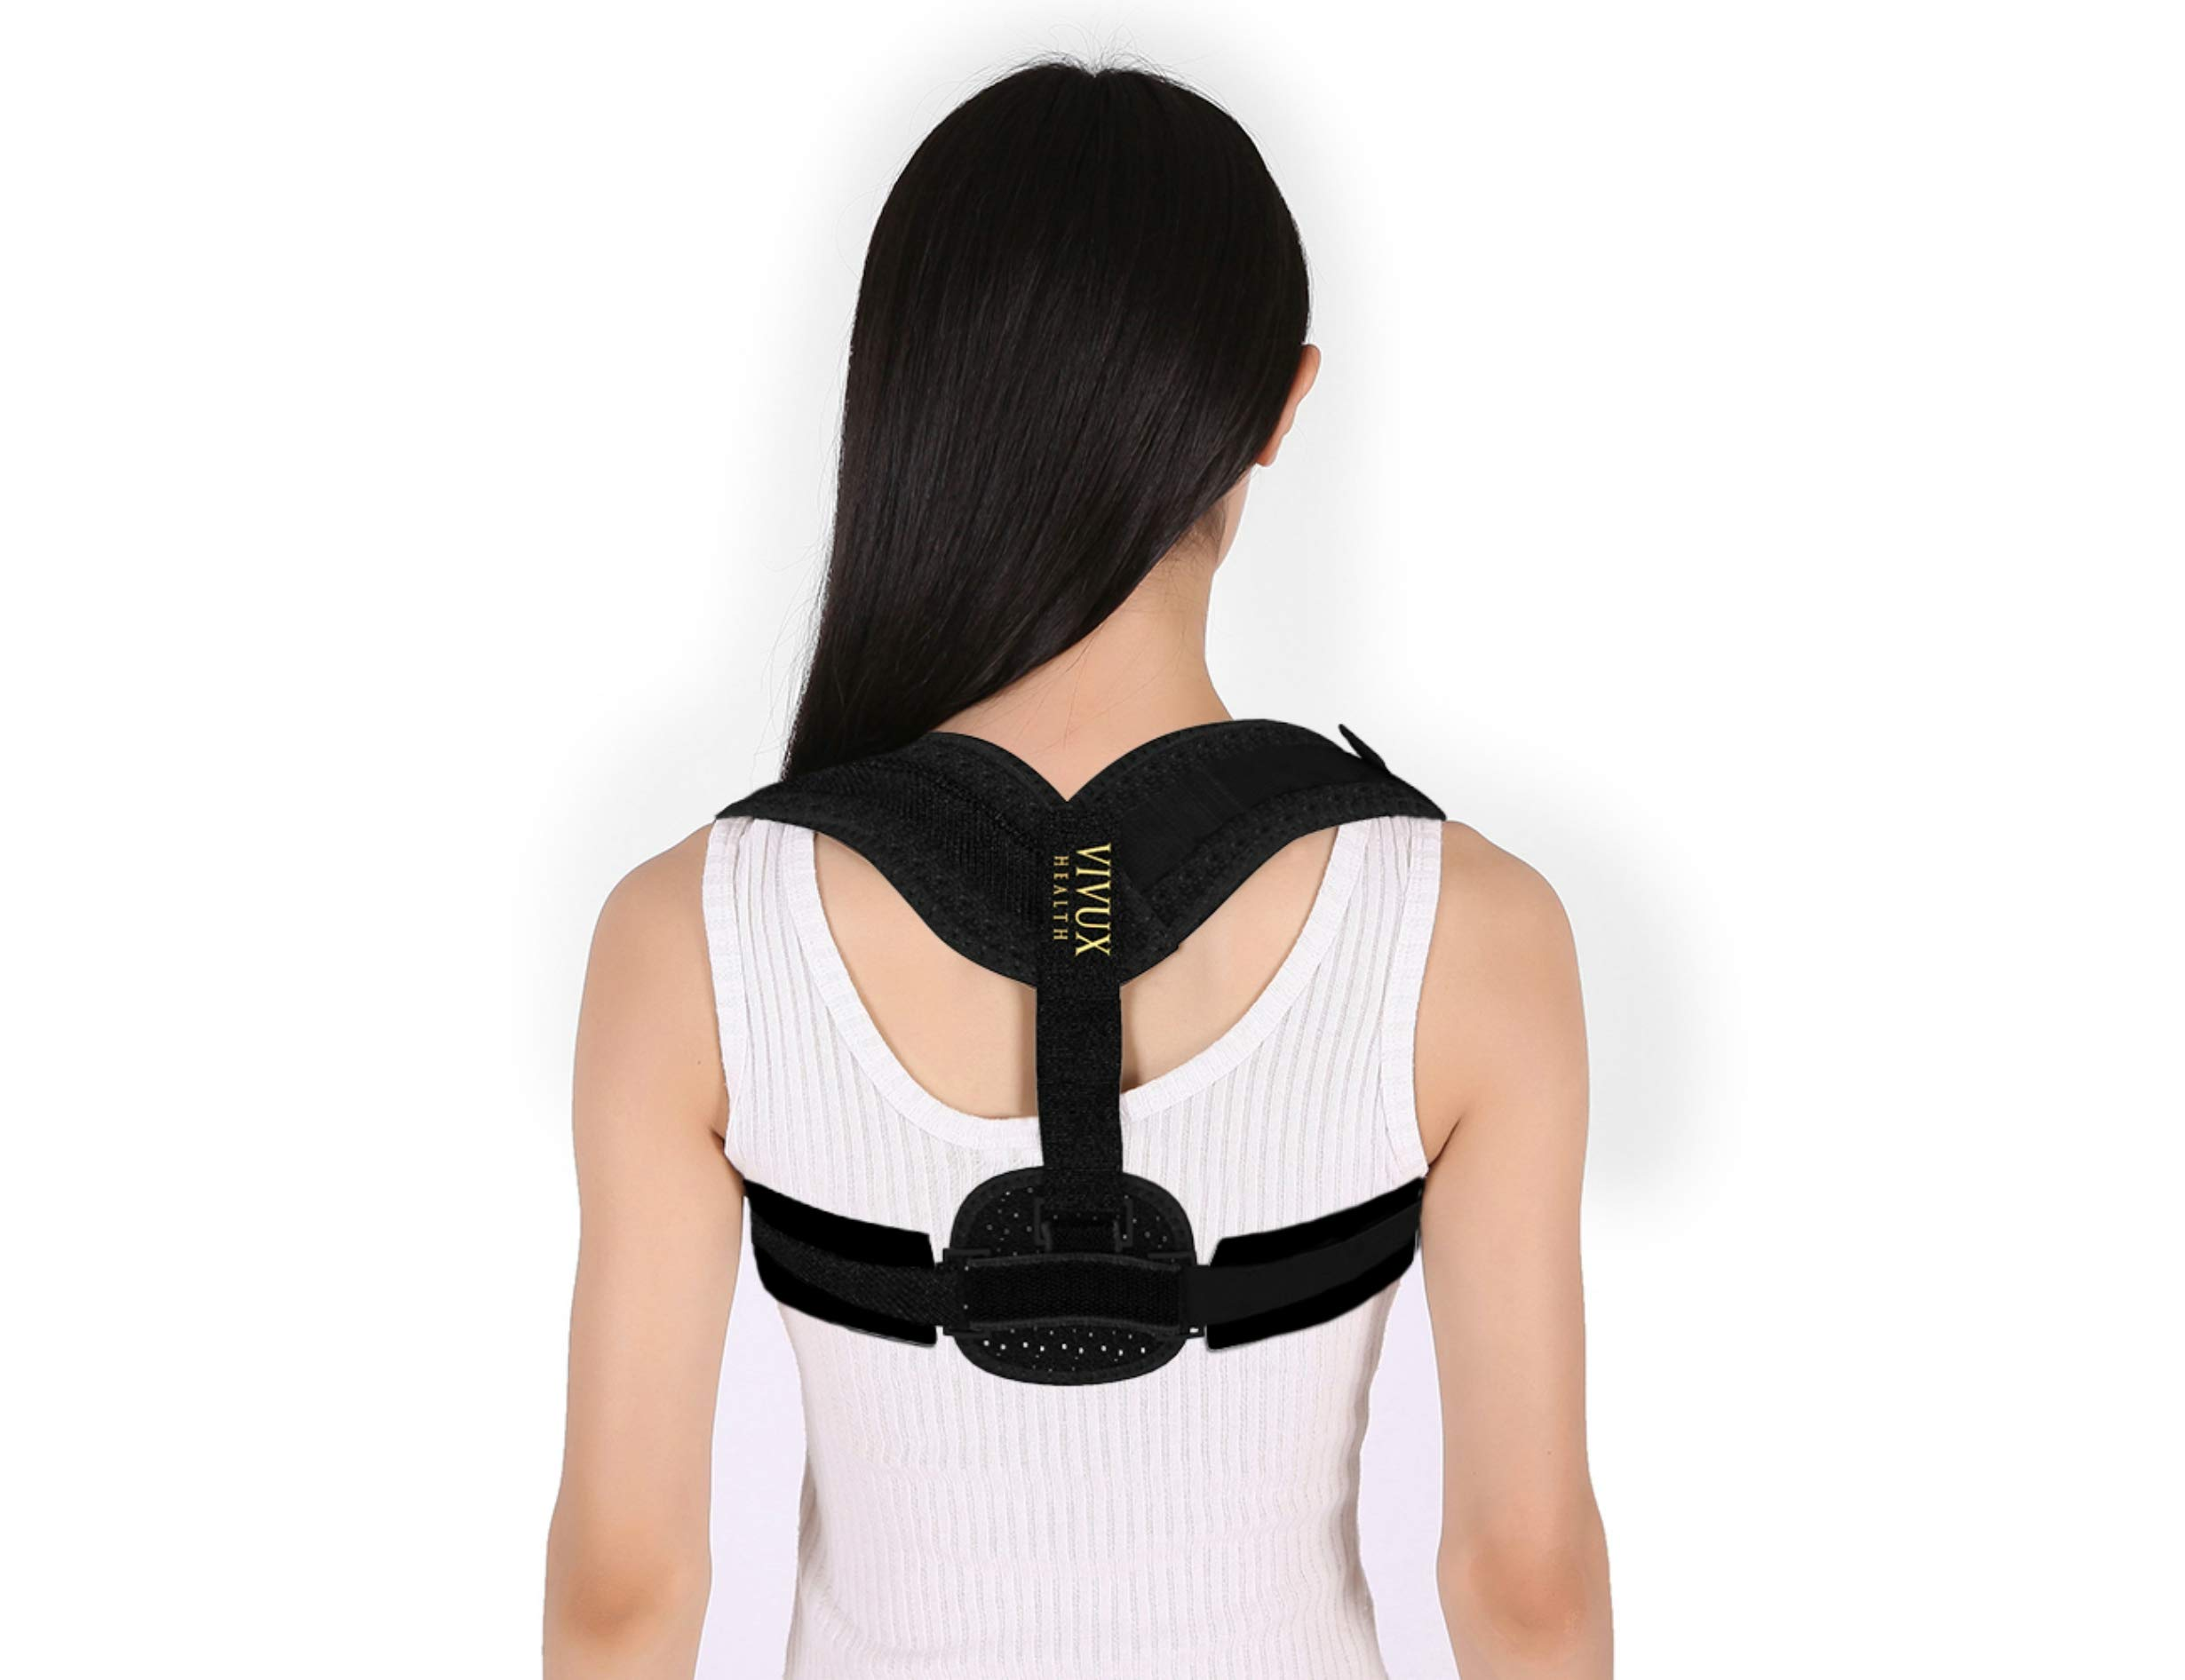 Posture Corrector for Women & Men | Back Support Brace for Upper Back & Neck Pain Relief | Back Straightener & Upright Trainer for Scoliosis & Spine Alignment | Under Clothes & Discreet | Soft Fabric